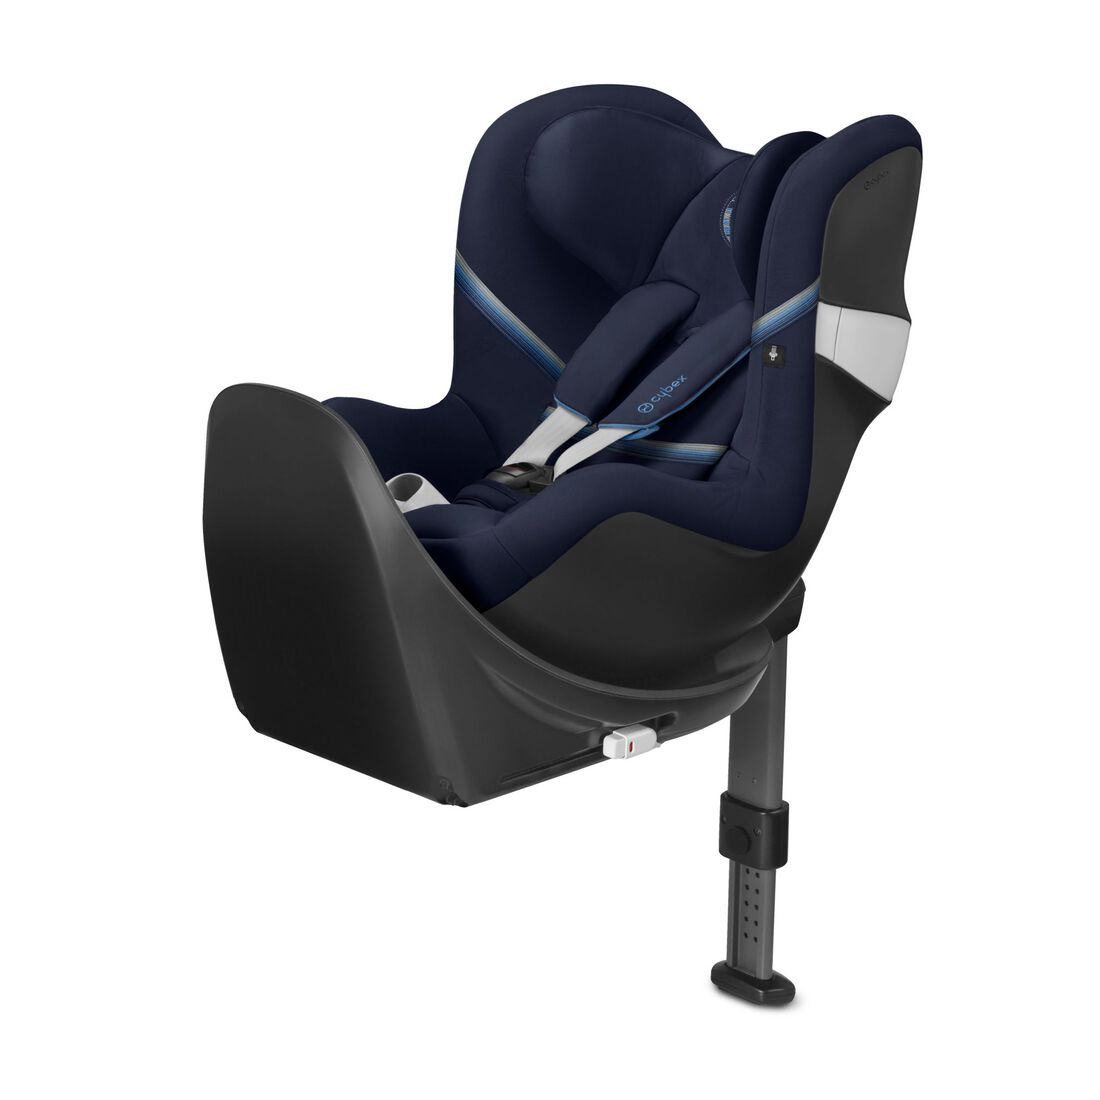 CYBEX Sirona M2 i-Size and Base M - Navy Blue in Navy Blue large image number 1